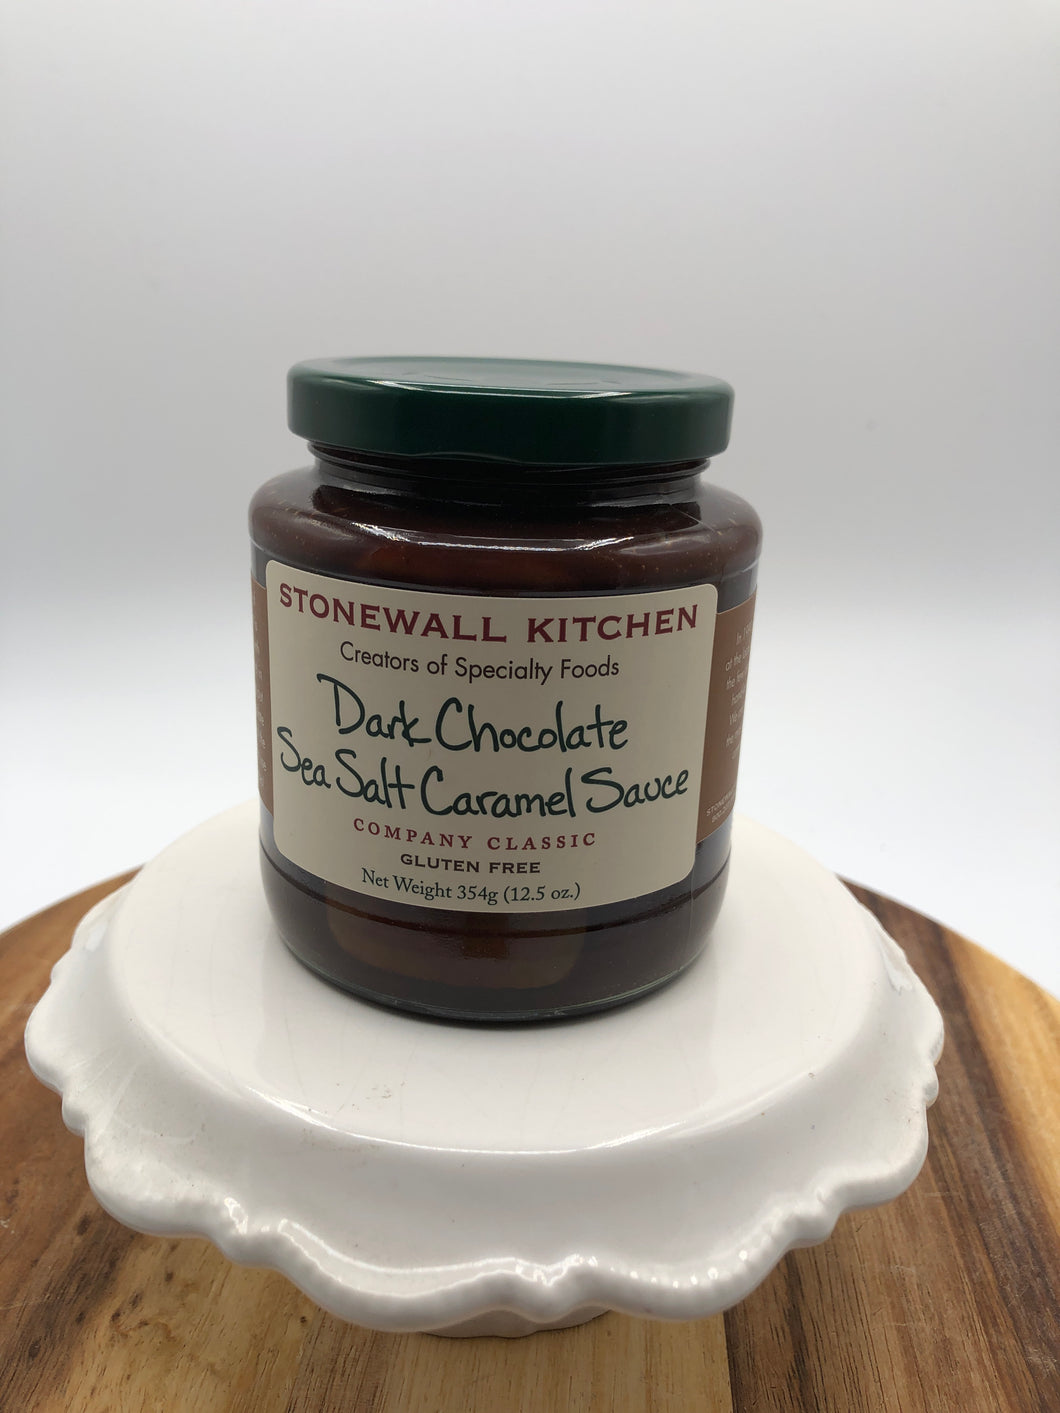 Dark Chocolate Sea Salt & Caramel Sauce